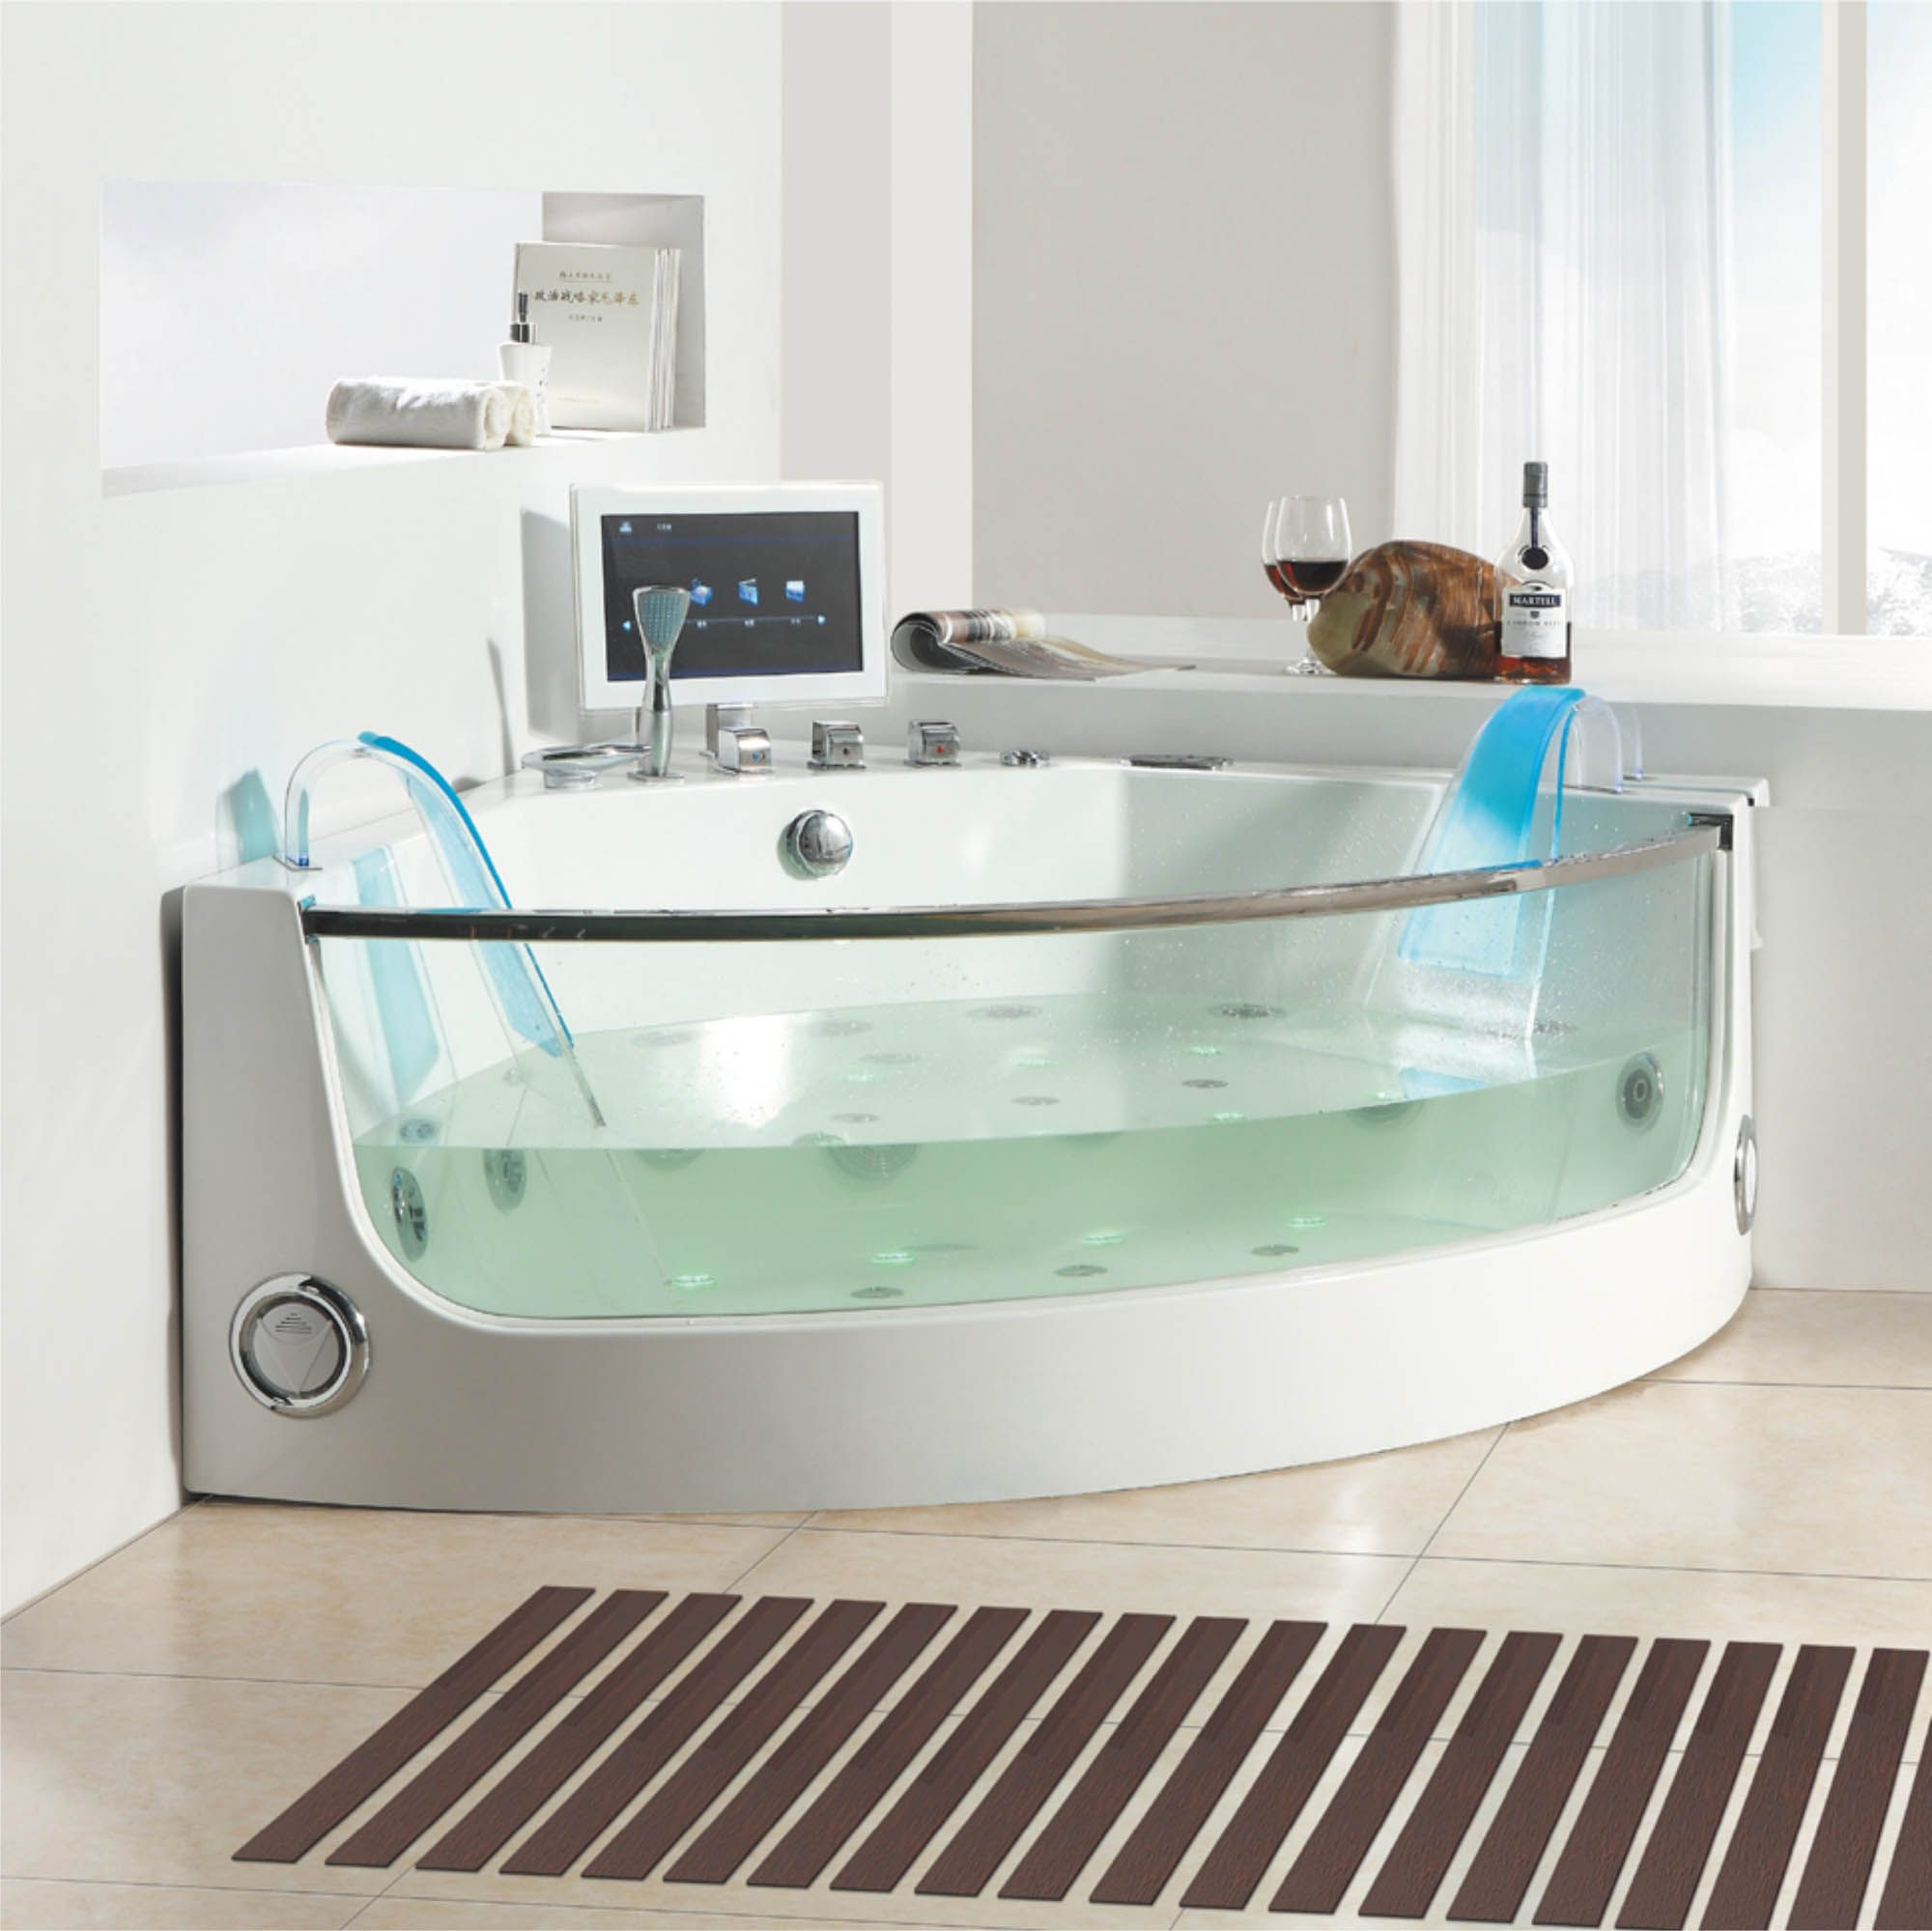 jacuzzi bathtub ssww whirlpool tub sanitary person grohe ware amp supplier malaysia kitchen